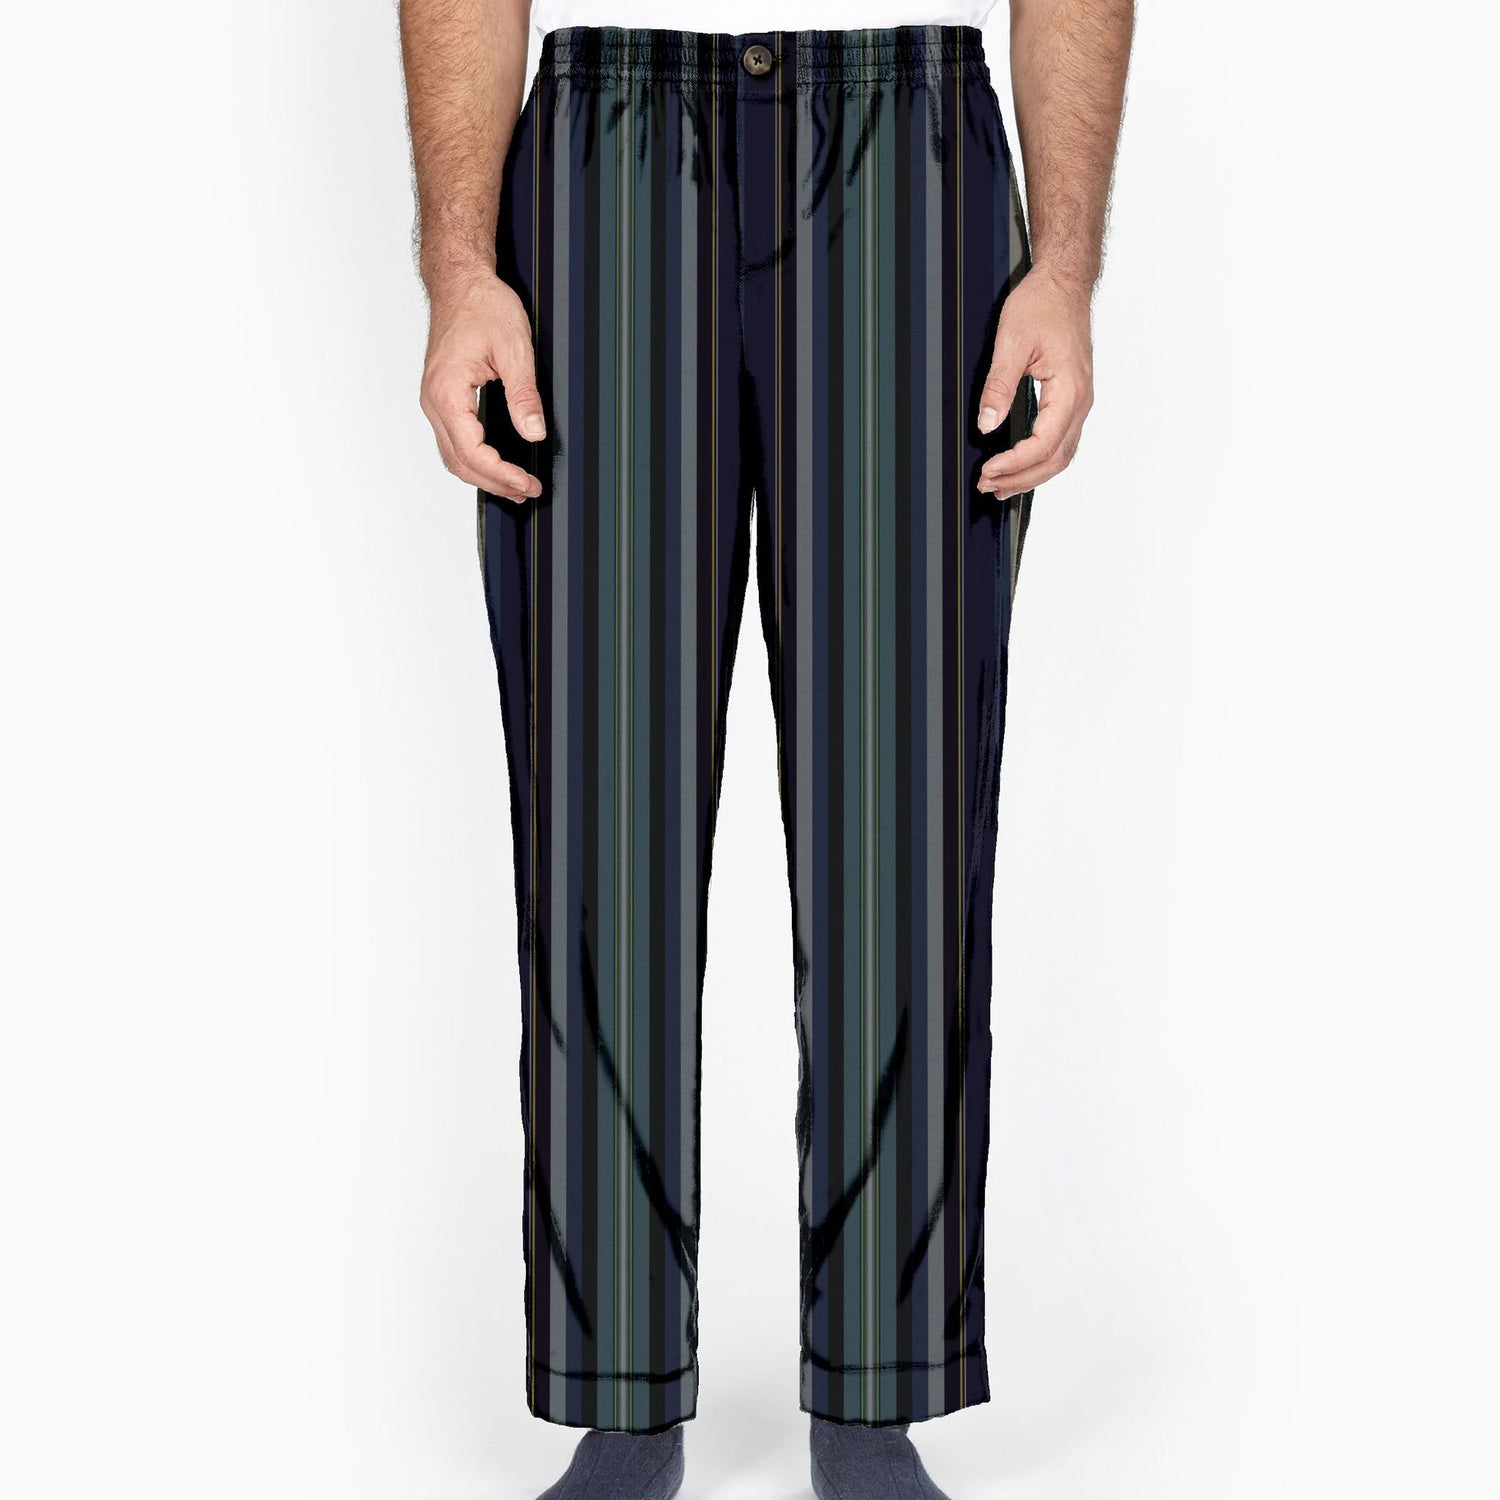 The Edward Scissorhands Stripe Flannel Lounge Pant